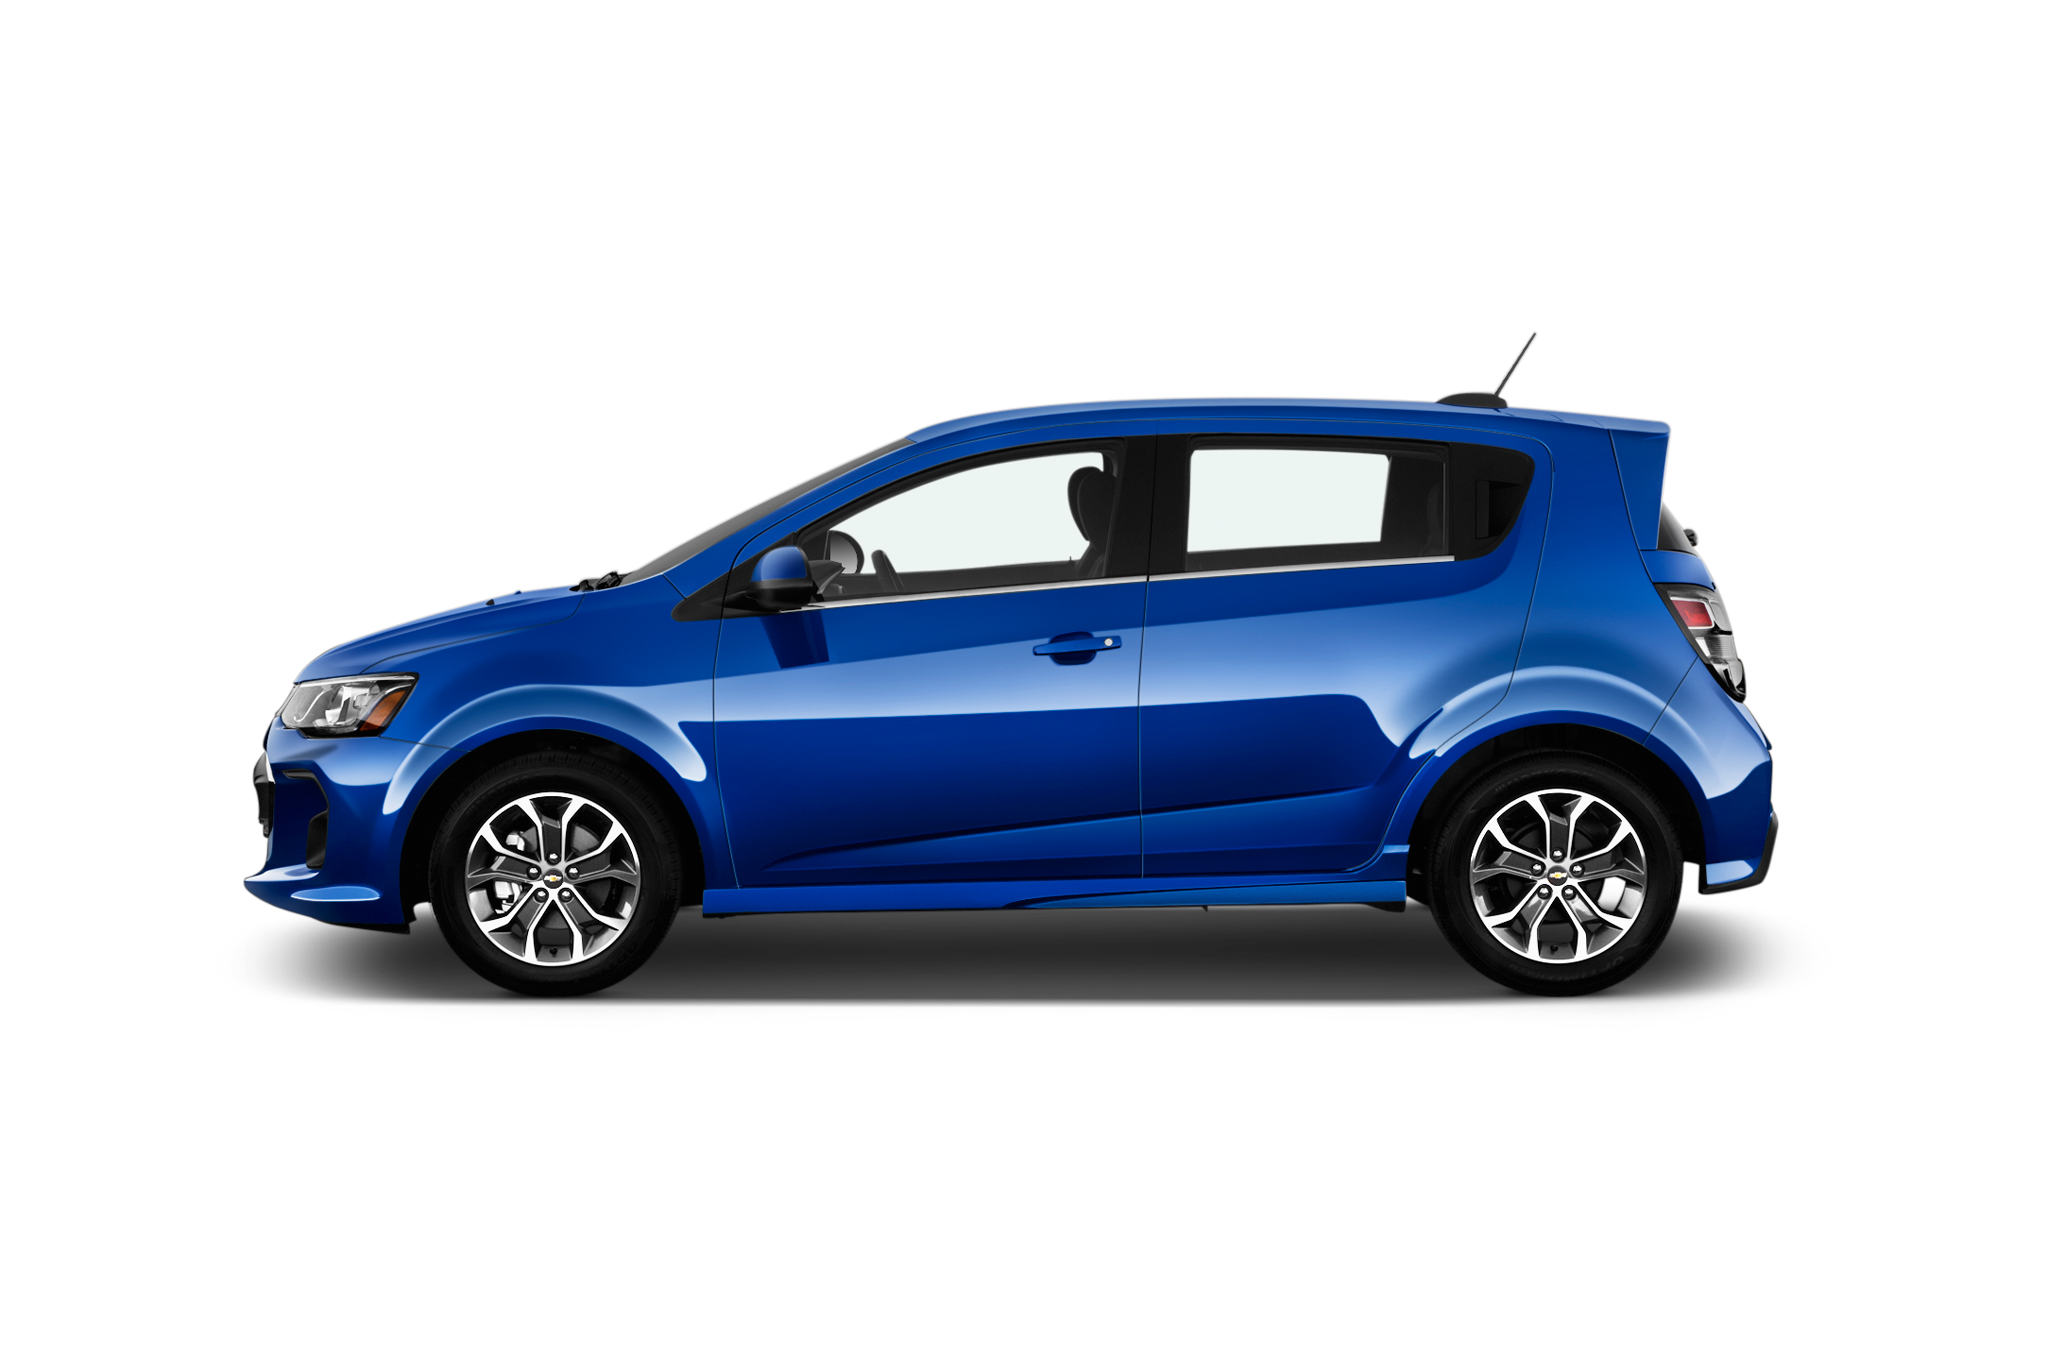 2015 Chevy Sonic Hatchback 2017 Chevrolet Sonic Hatchback | 2017 - 2018 Best Cars Reviews